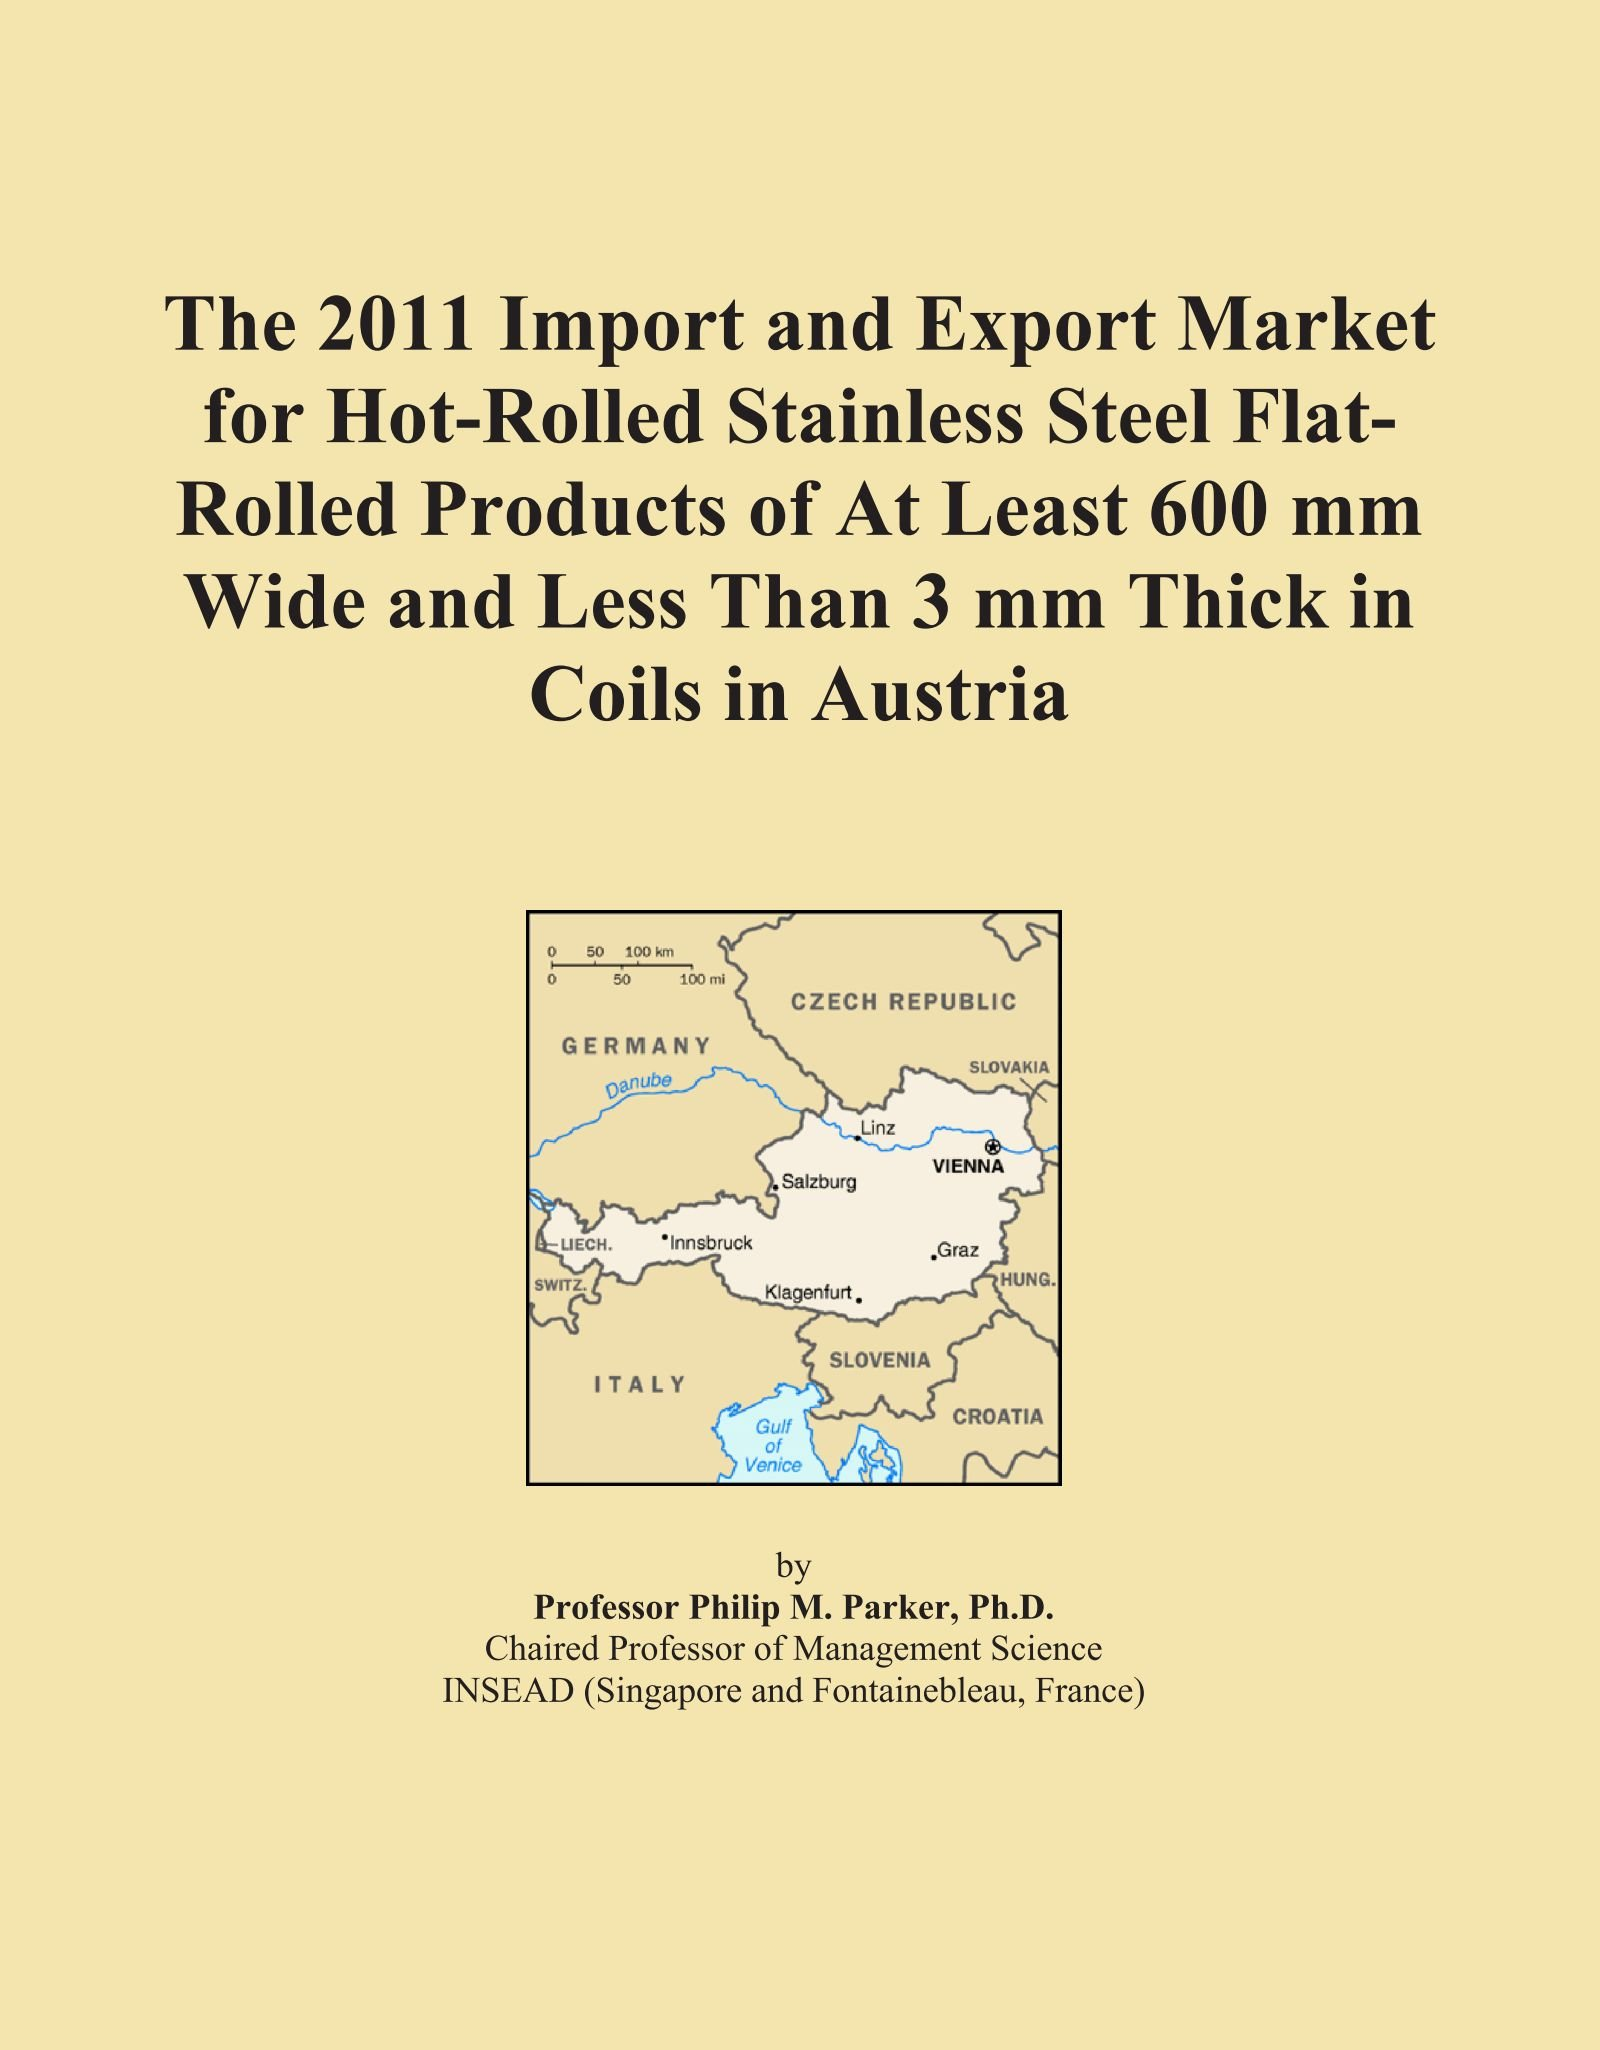 Download The 2011 Import and Export Market for Hot-Rolled Stainless Steel Flat-Rolled Products of At Least 600 mm Wide and Less Than 3 mm Thick in Coils in Austria PDF